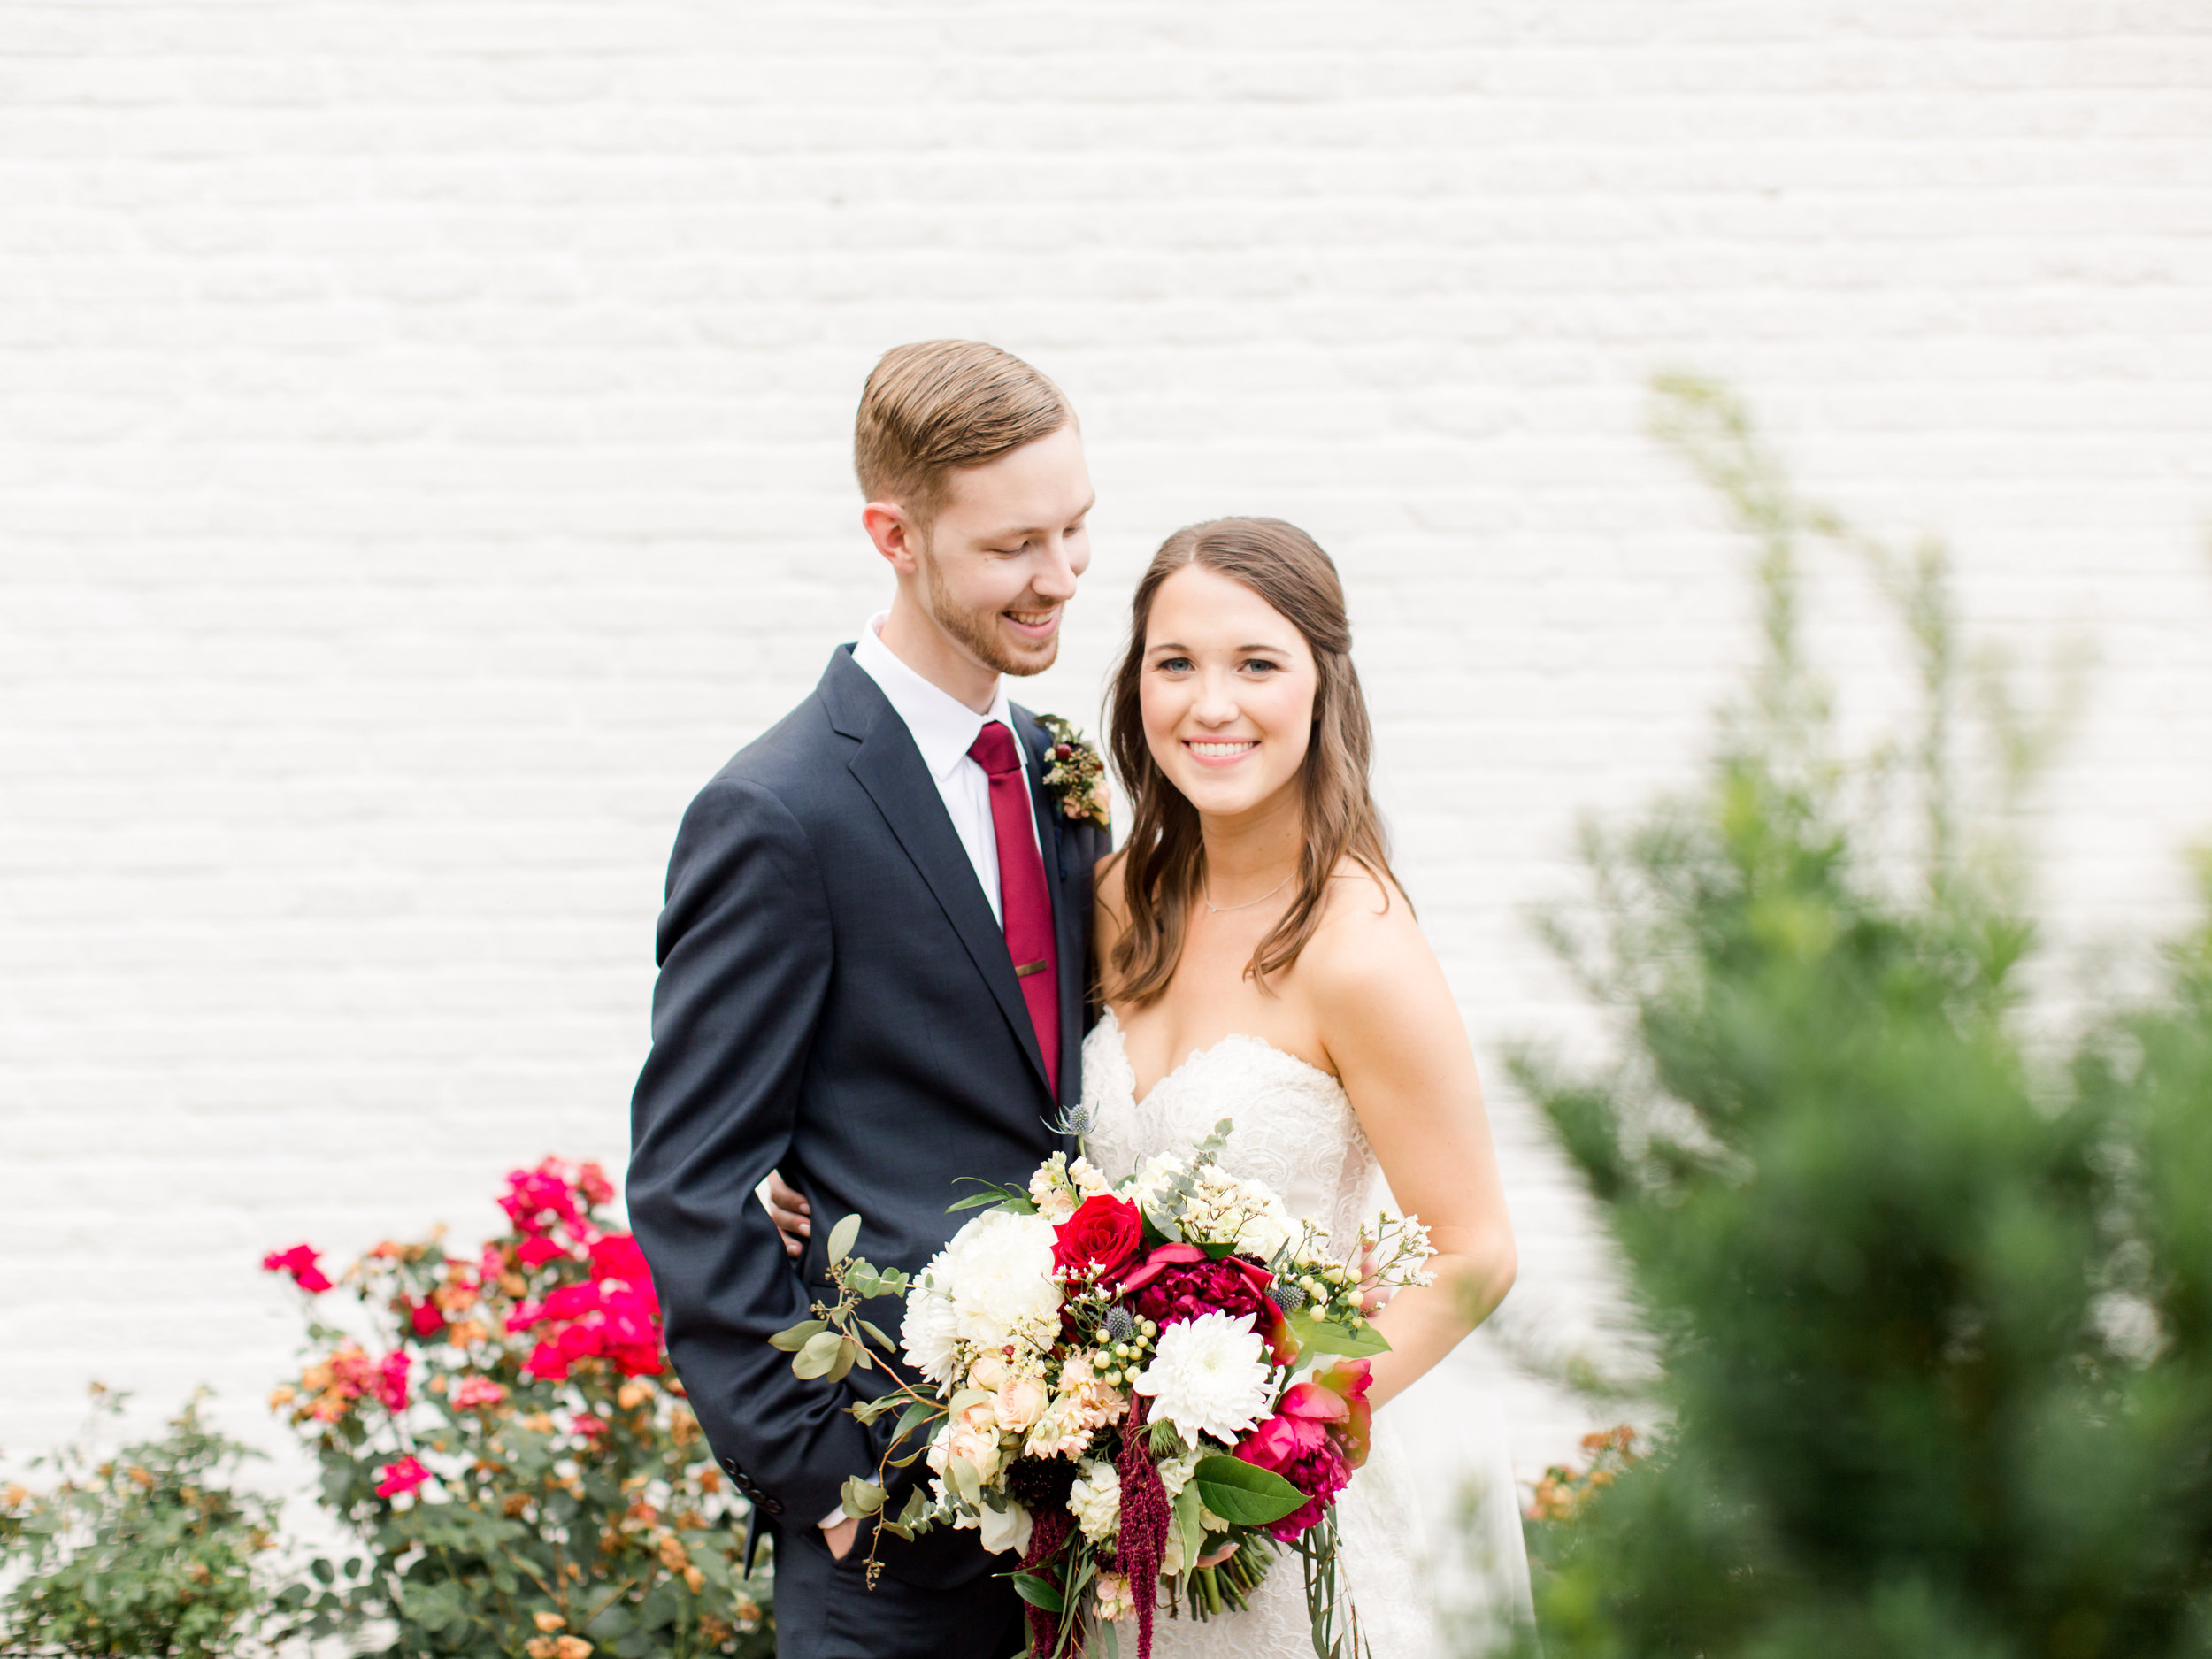 roanoke-virginia-wedding-photographer-plantation-on-sunnybrook-meredith-and-logan-913.jpg